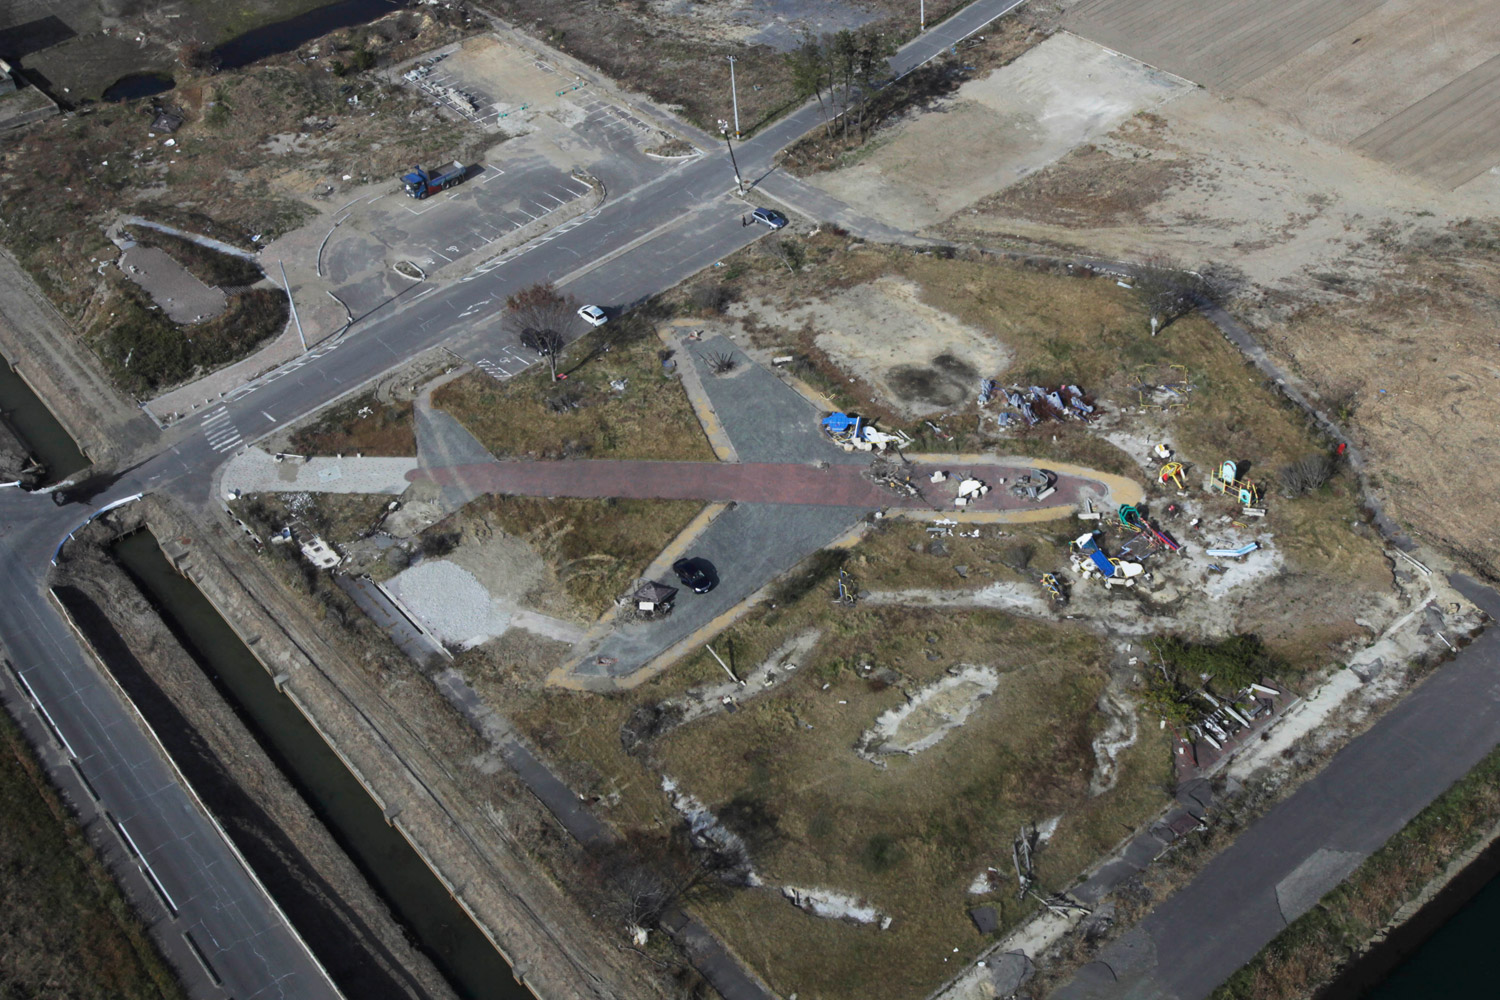 November 18, 2011. Debris scattered across the outline of a jet marking Sendai airport on Japan's eastern coast serves as a lingering sign of the tsunami and earthquake that hit the country in March. Eight months after the twin disasters, the Japanese economy is finally showing signs of recovery.